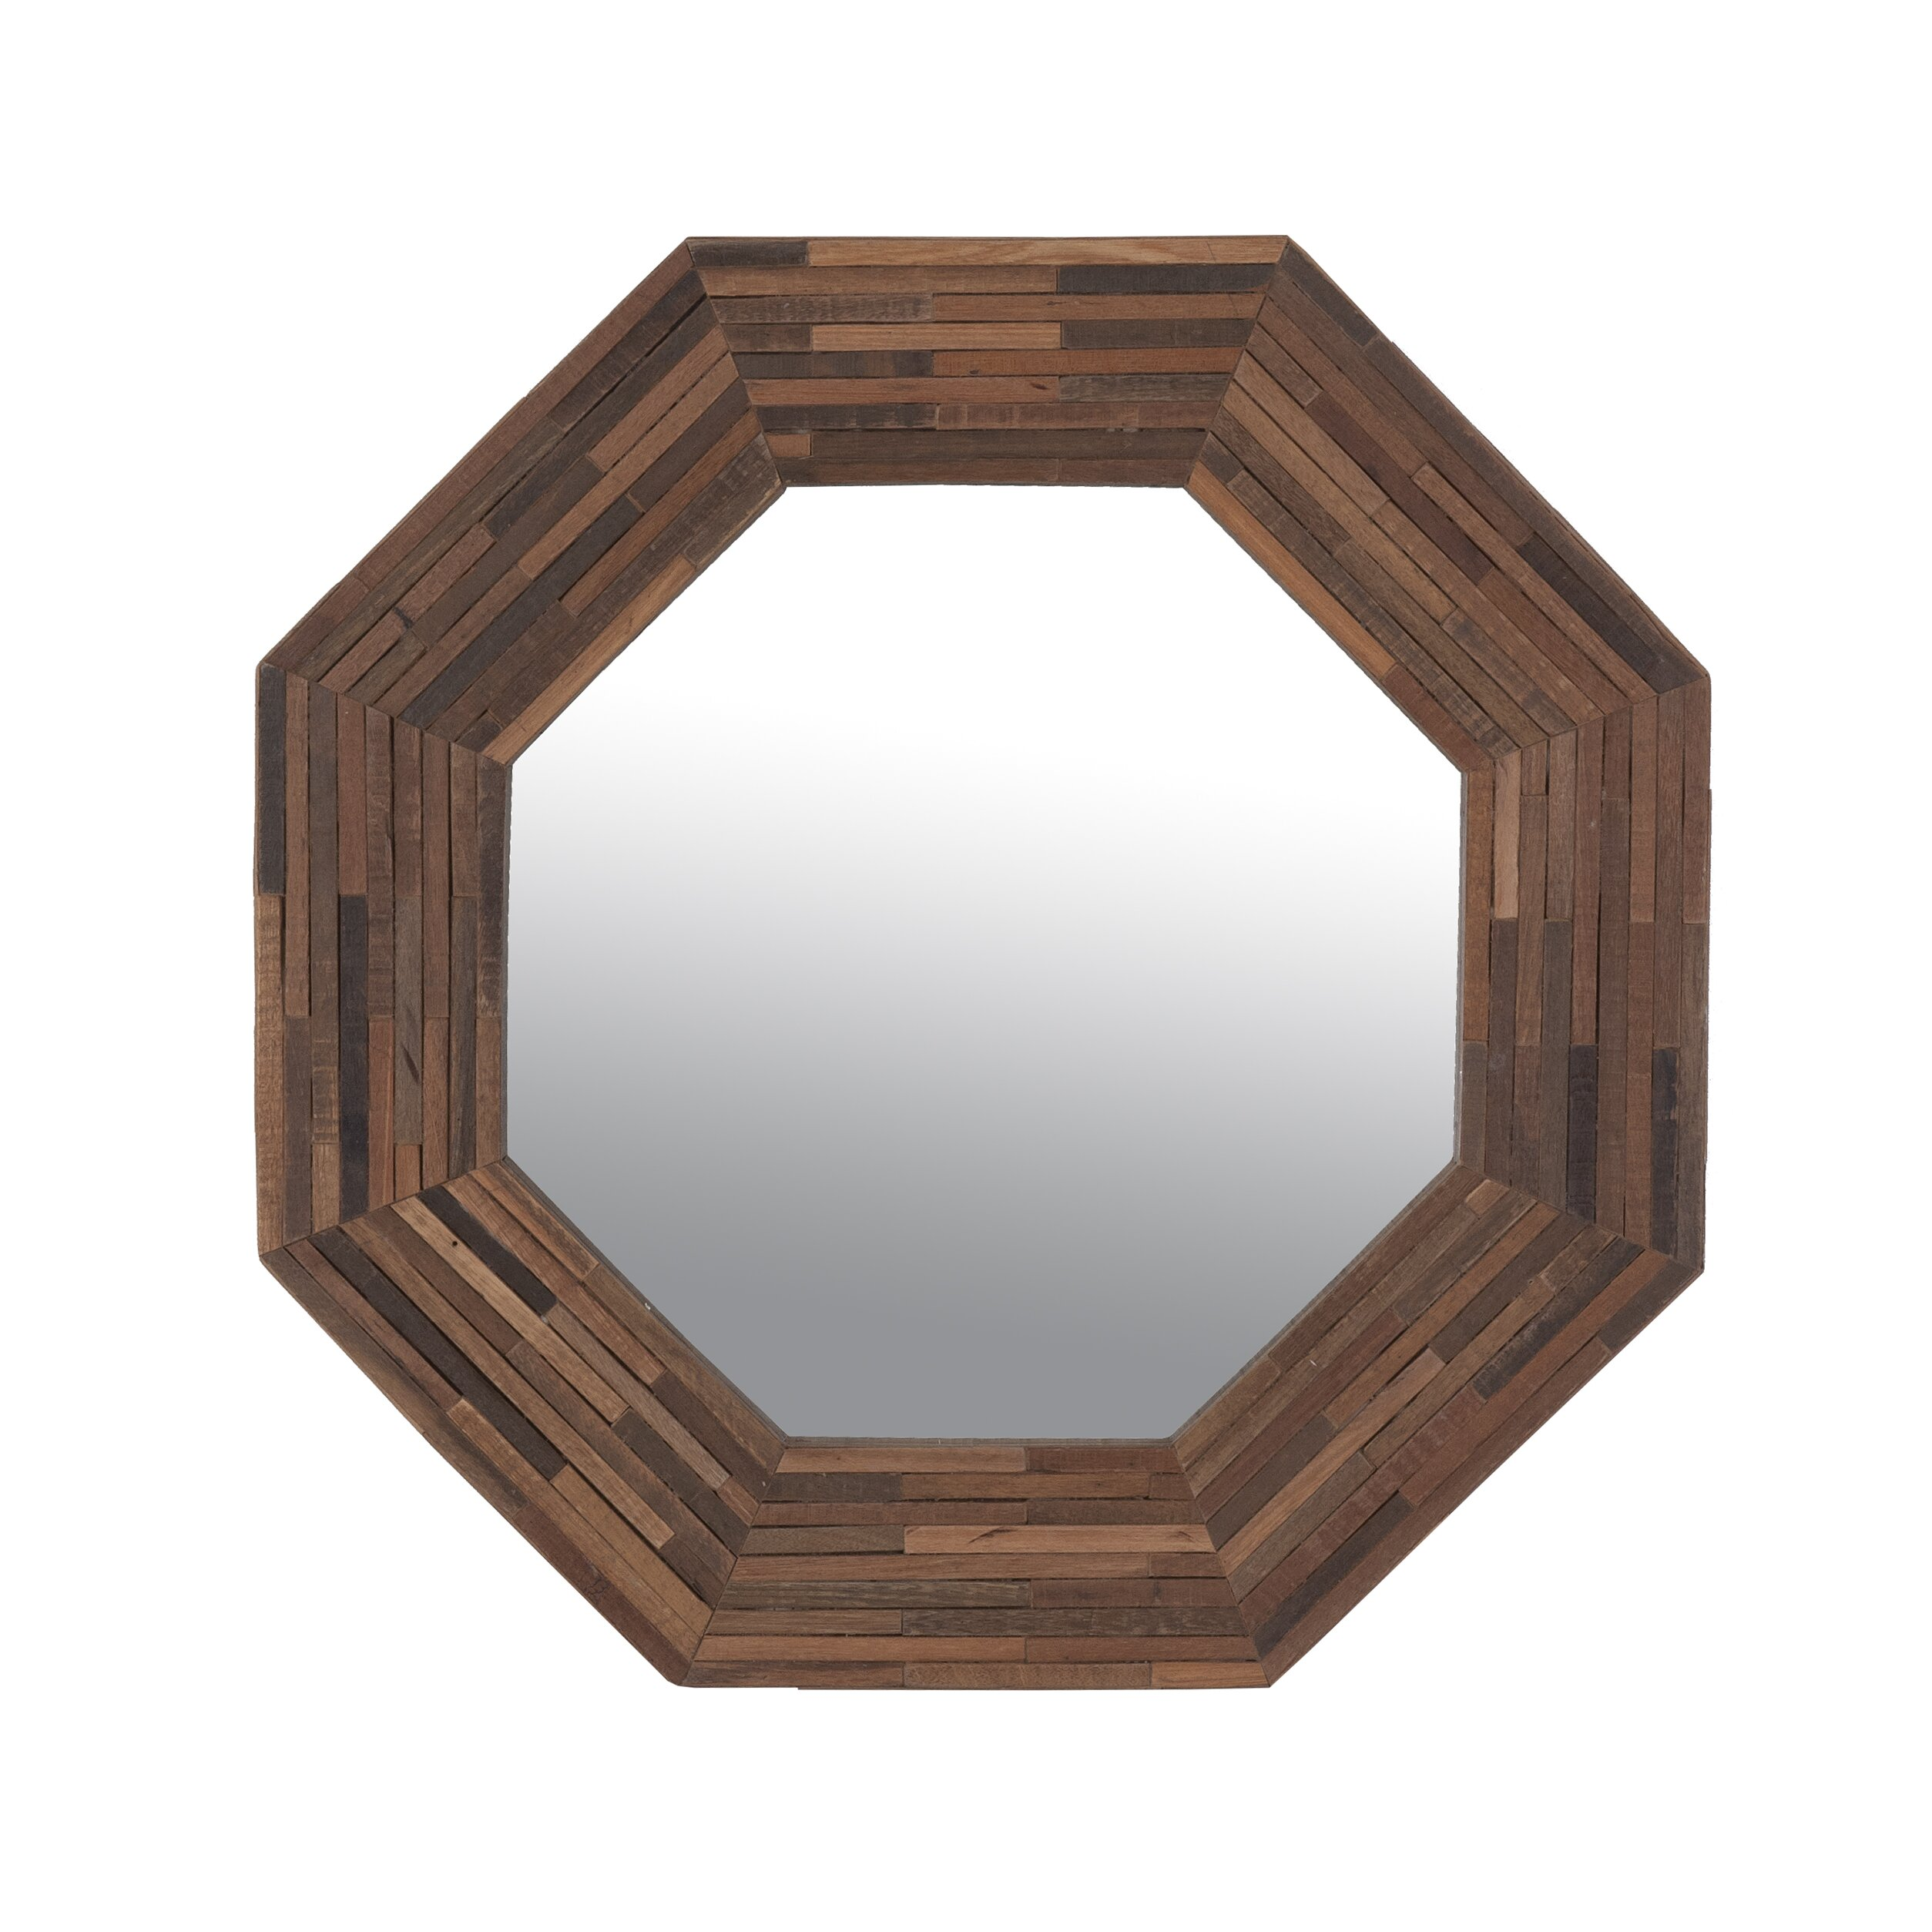 Rosario accent wall mirror reviews allmodern for Accent mirrors